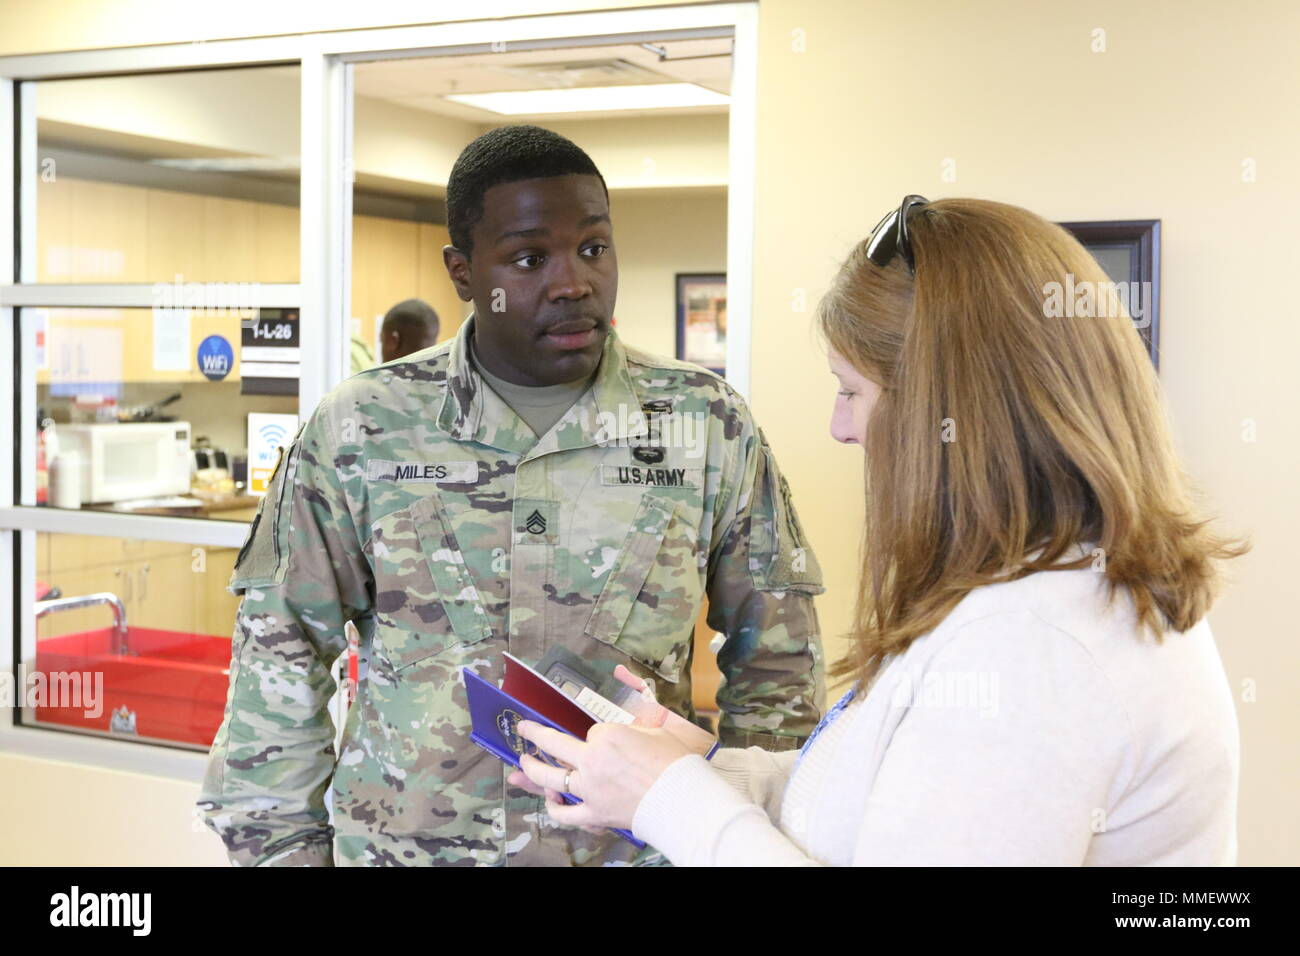 """Staff Sgt. Contavious L. Miles, Chicago native, civil affairs specialist, 97th Civil Affairs Battalion (Airborne), 95th CA Brigade (A), shows Beverly Jackson, USO of North Carolina, one copy of the Disney classic """"Snow White and the Seven Dwarfs,"""" Oct. 26, Fort Bragg, N.C. This was one of 250 books Miles donated to the USO to be distributed during USO events. (photo by Sgt. 1st Class Thomas Collins, released) Stock Photo"""